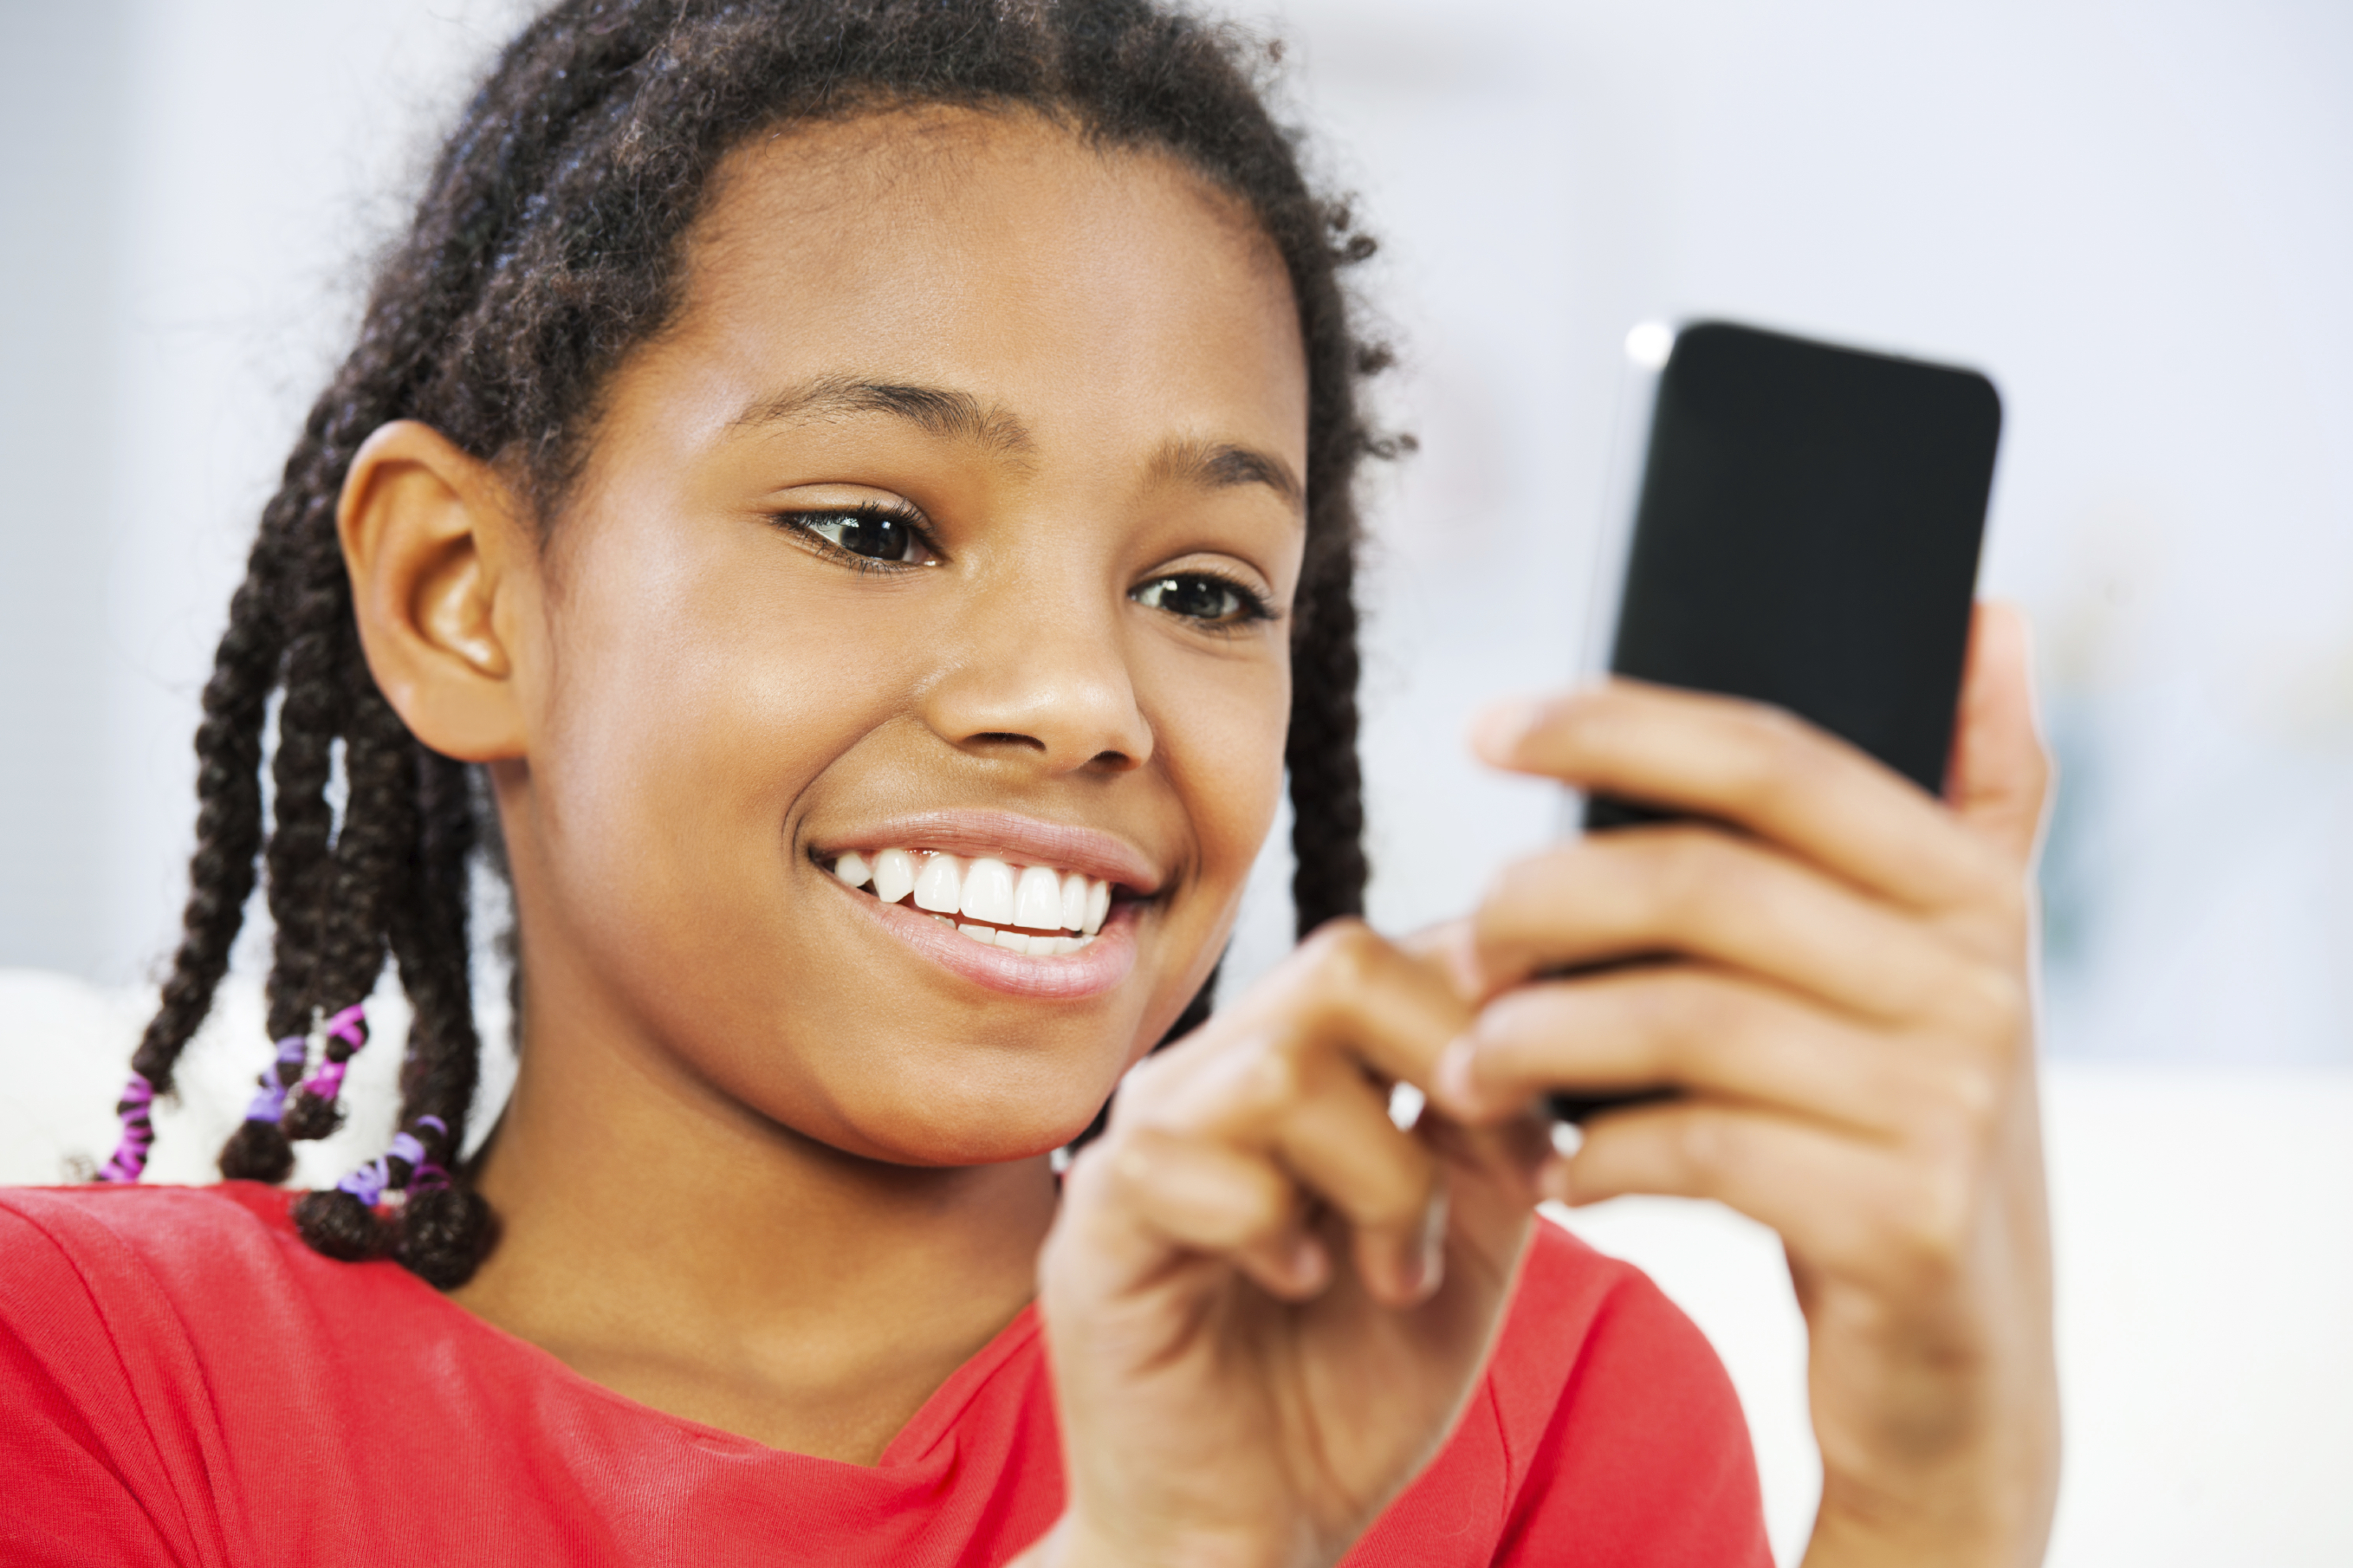 How platforms built for kids are allowing them to have a political voice